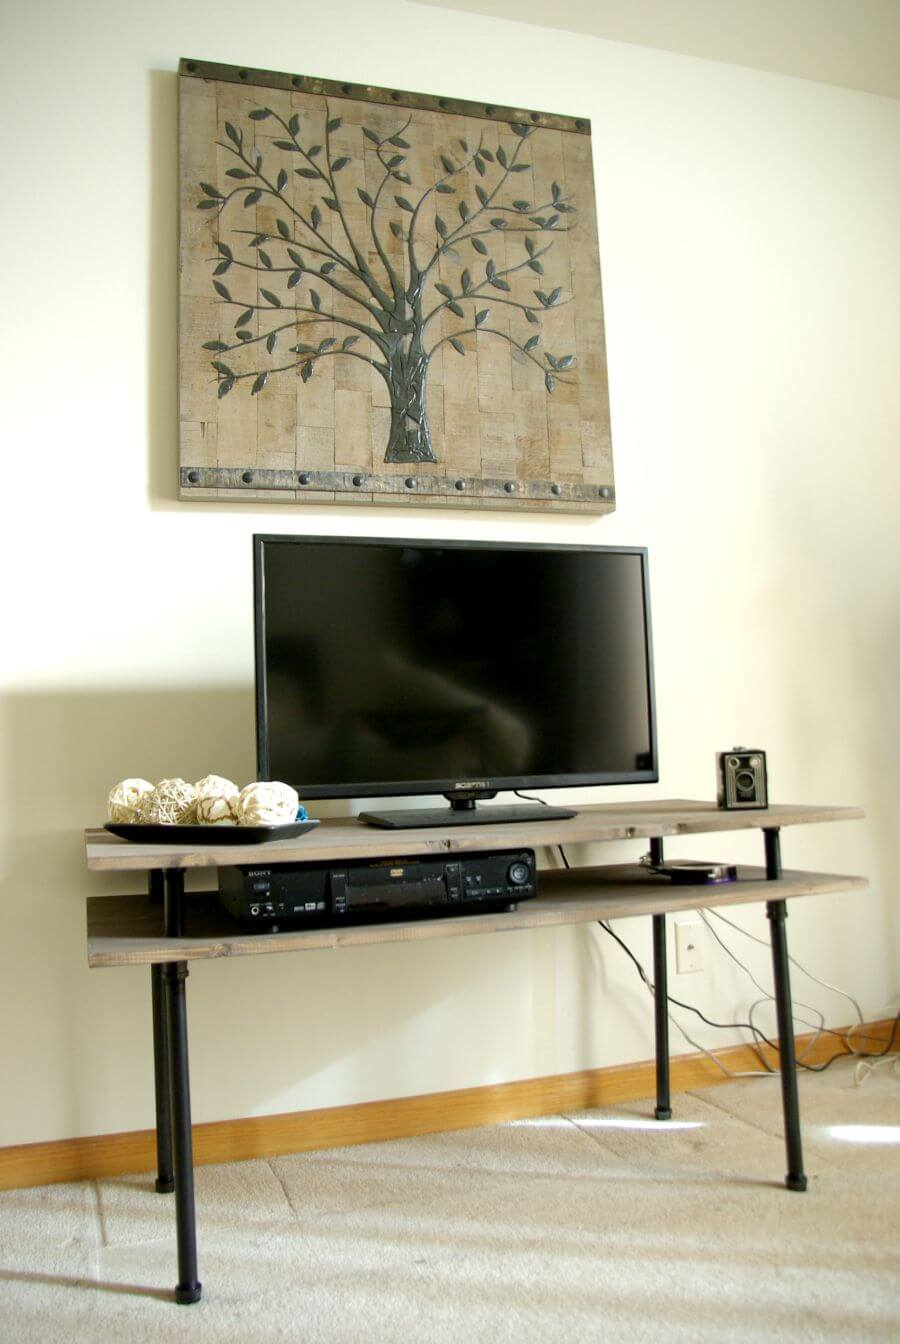 Diy Small Entertainment Center 50 Creative Diy Tv Stand Ideas For Your Room Interior Diy